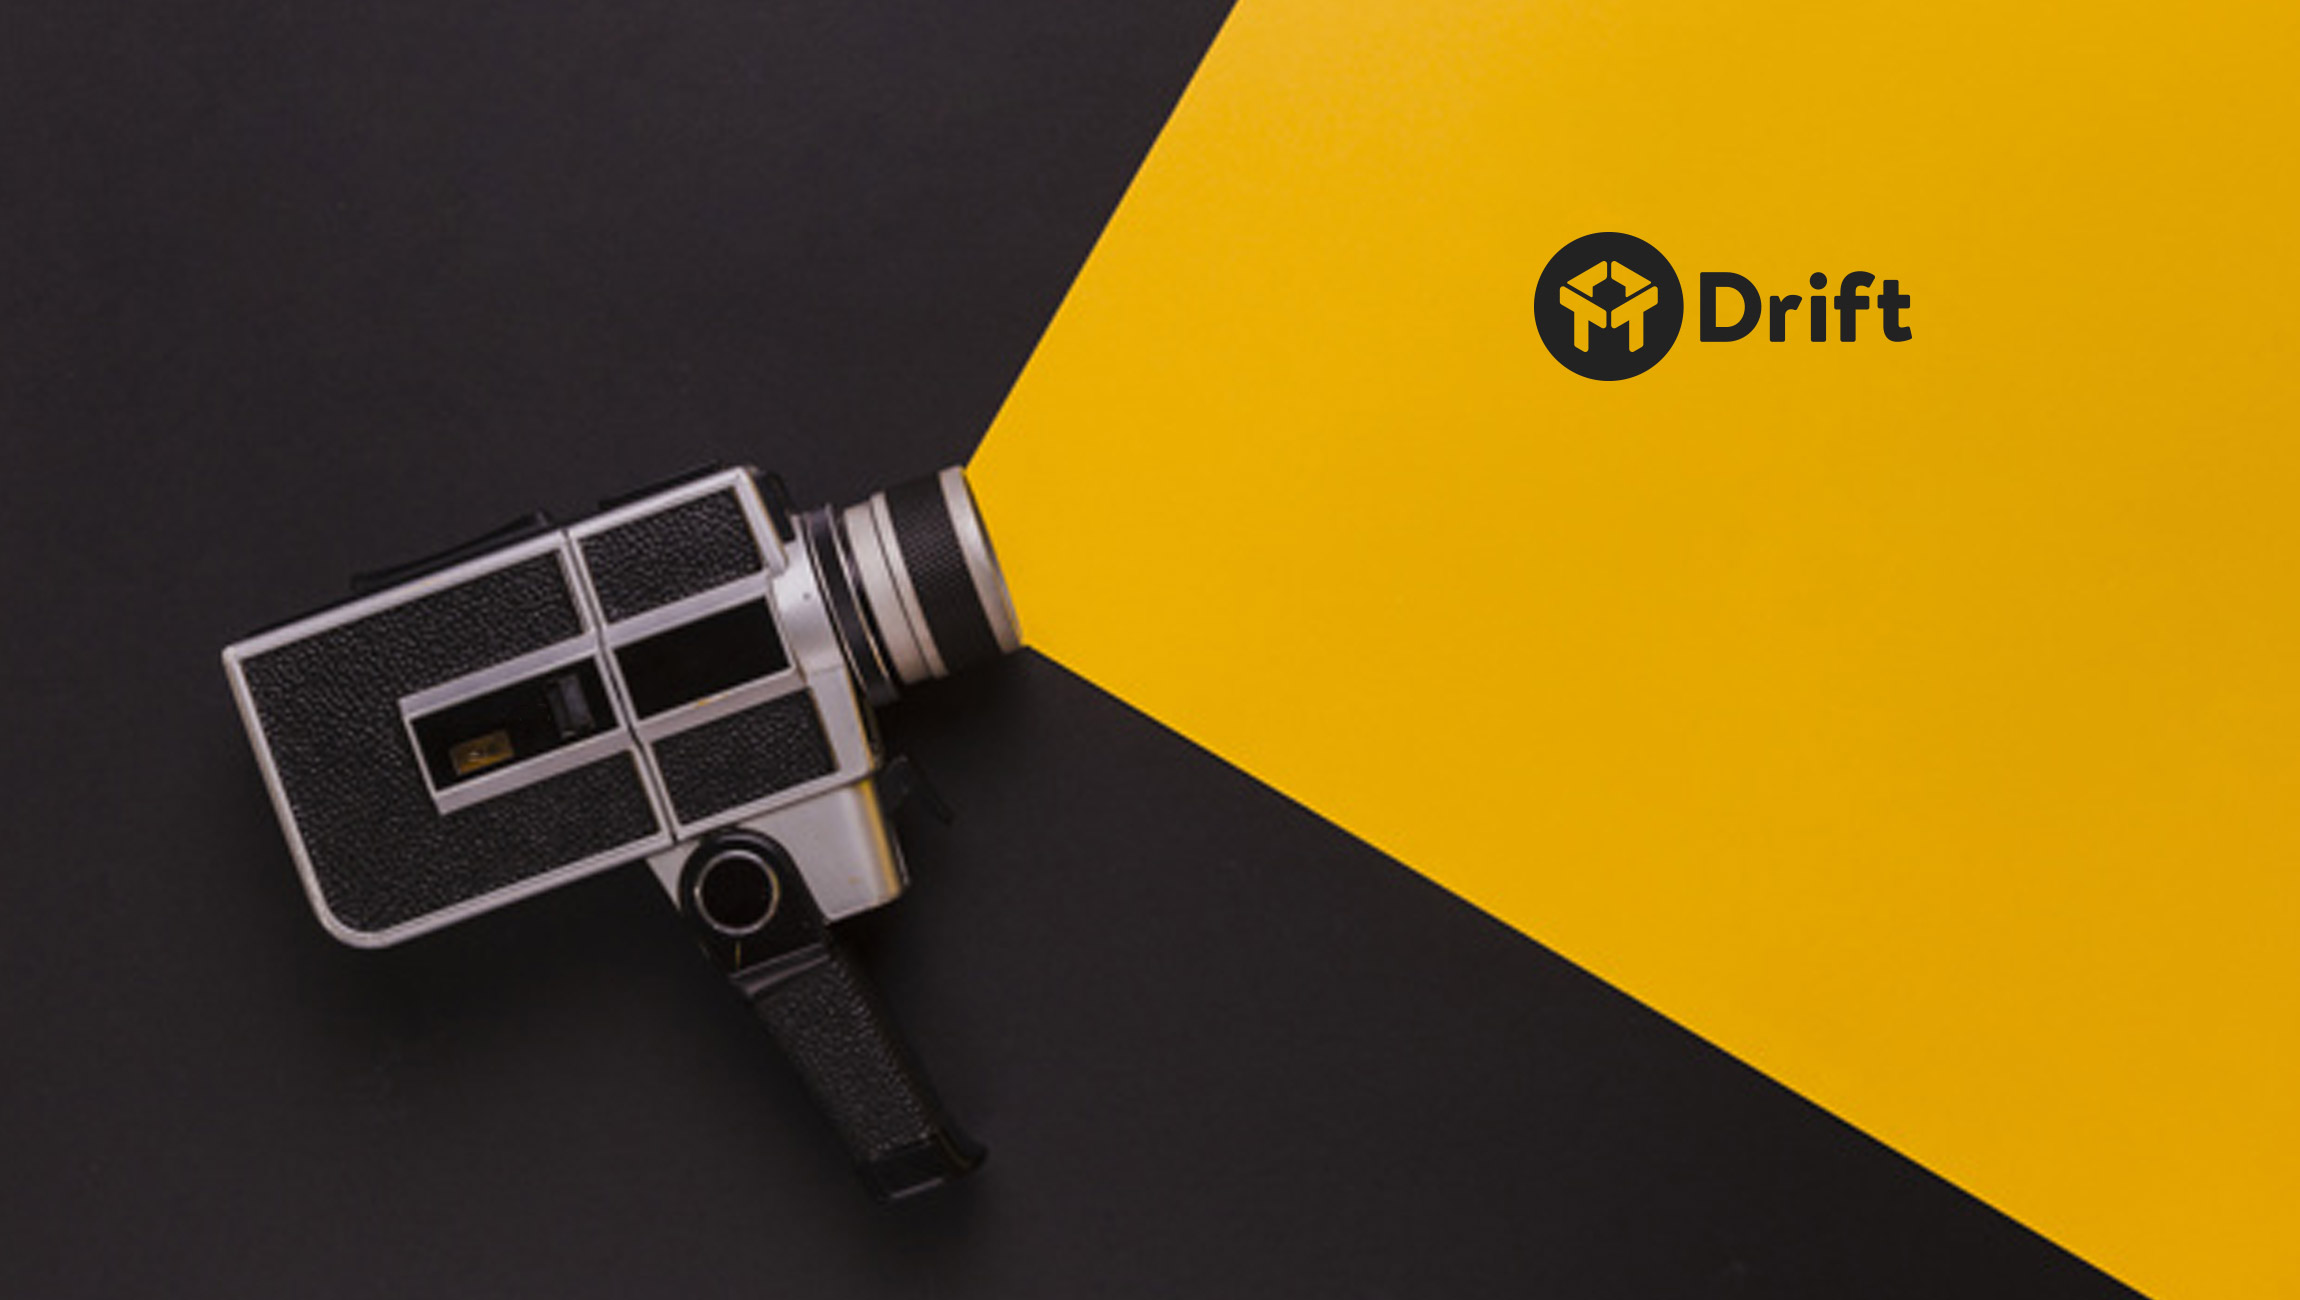 Drift Launches the First Enterprise-Ready Video Platform Built to Start Conversations and Make Buying Easy